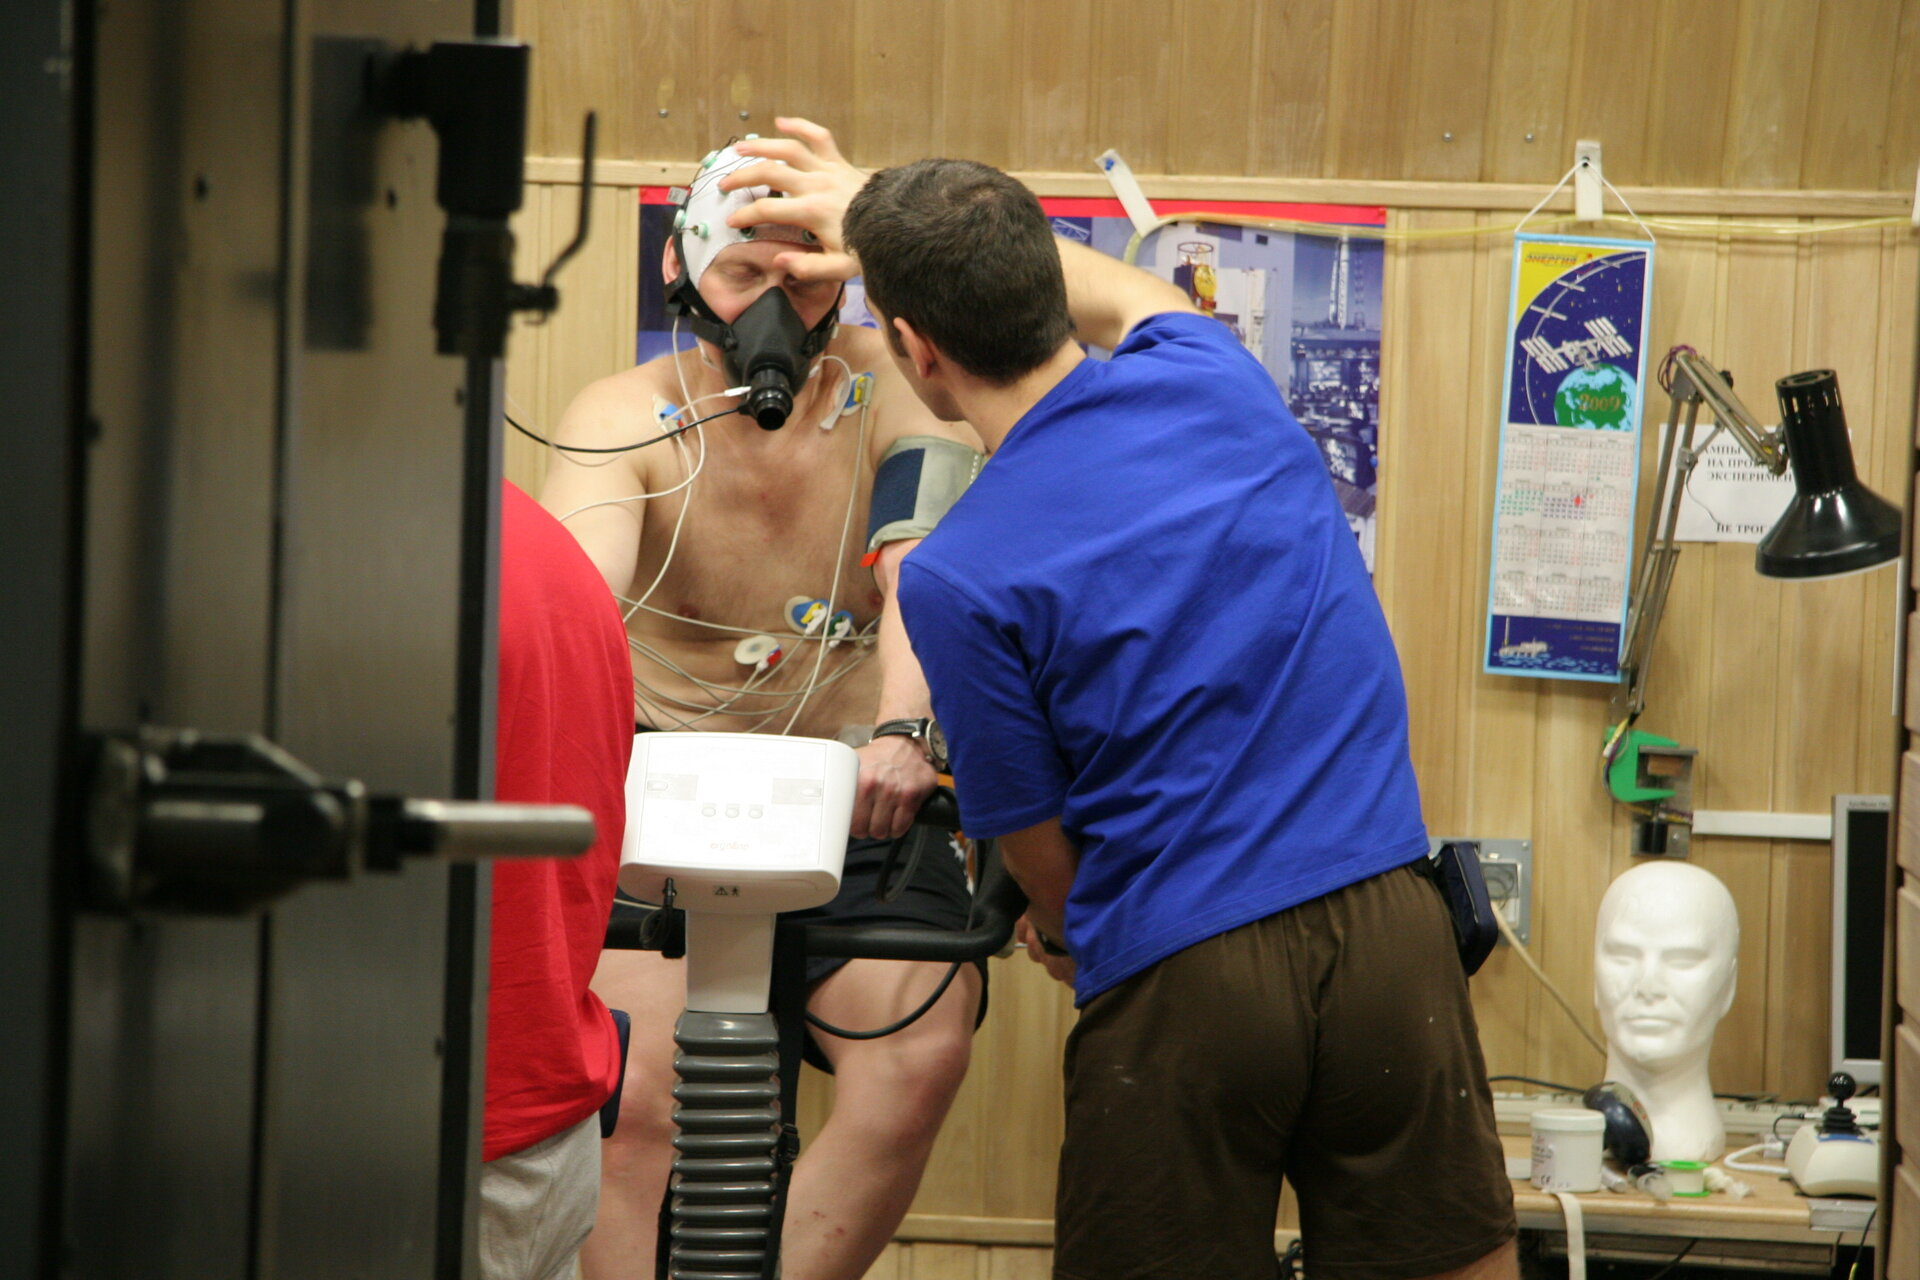 Oliver checks electrodes being used to measure brain activity as Oleg exercises on bicycle ergometer